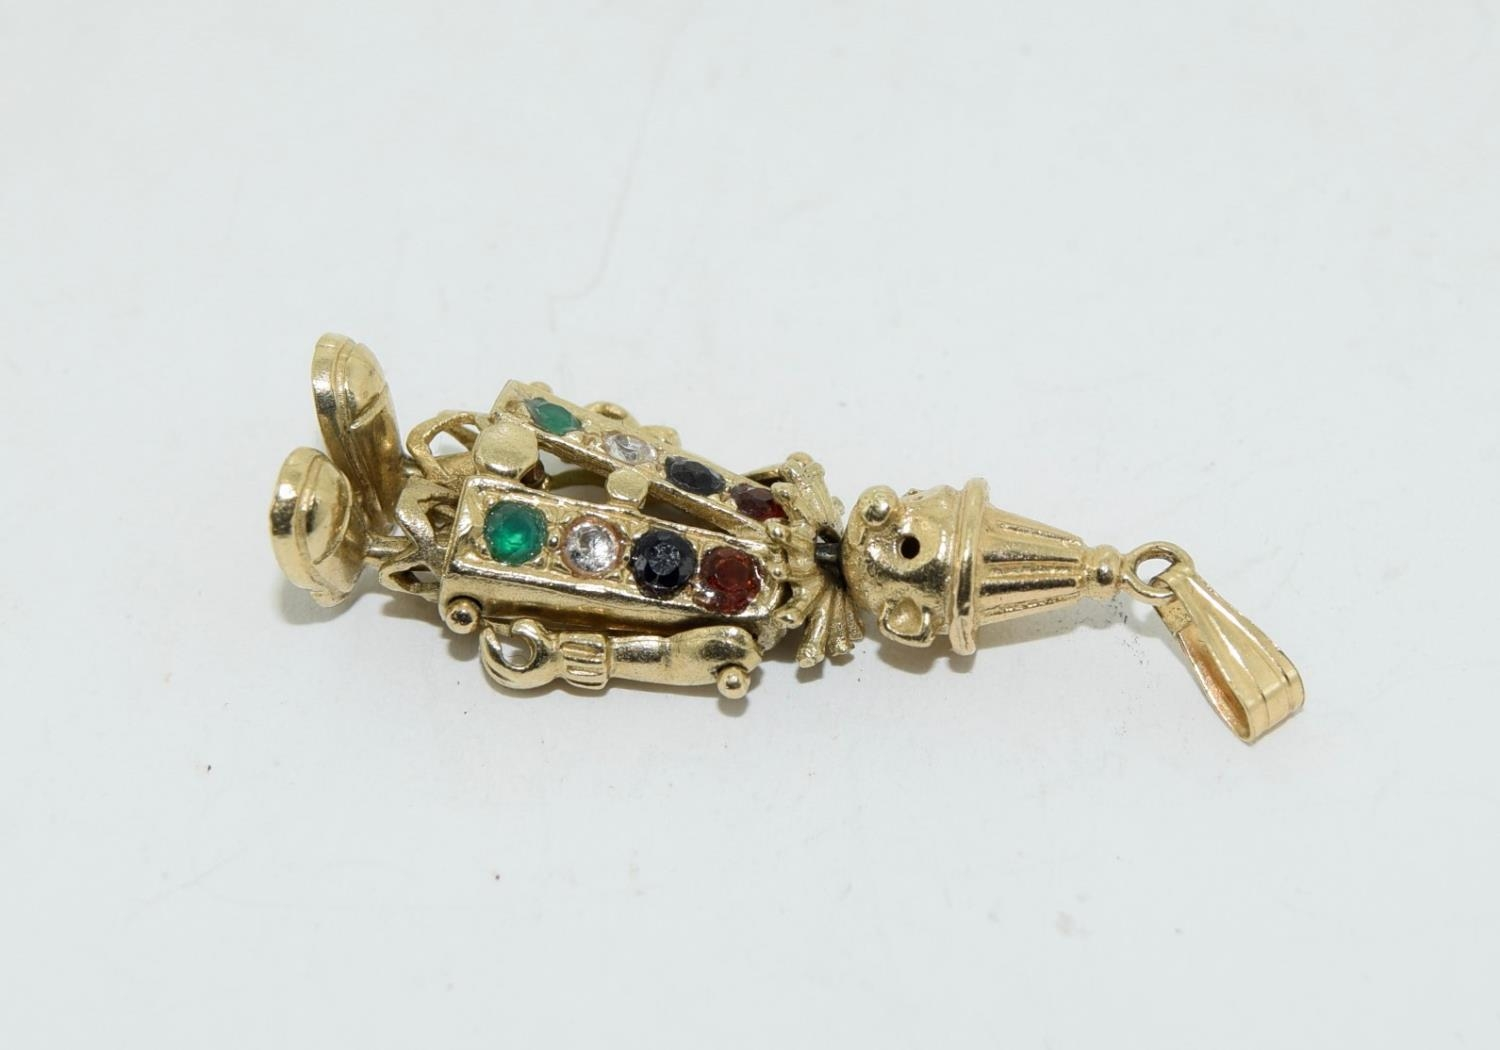 9ct gold charm as an articulated clown figure set with precious stone - Image 2 of 10